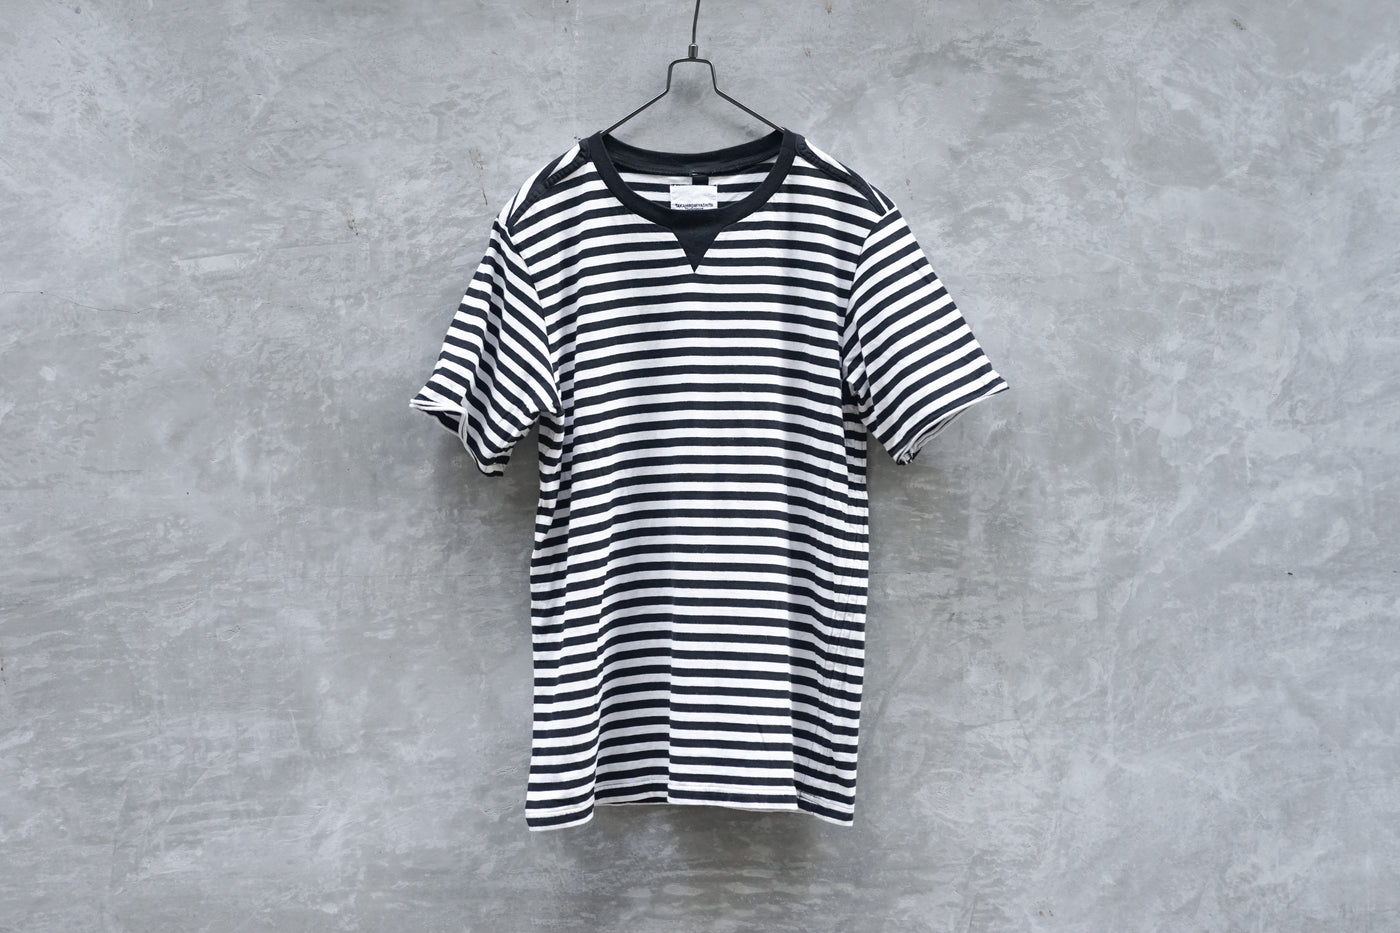 TAKAHIROMIYASHITA The Soloist. Striped Cotton Jersey Short Sleeve T-shirt - OKURA